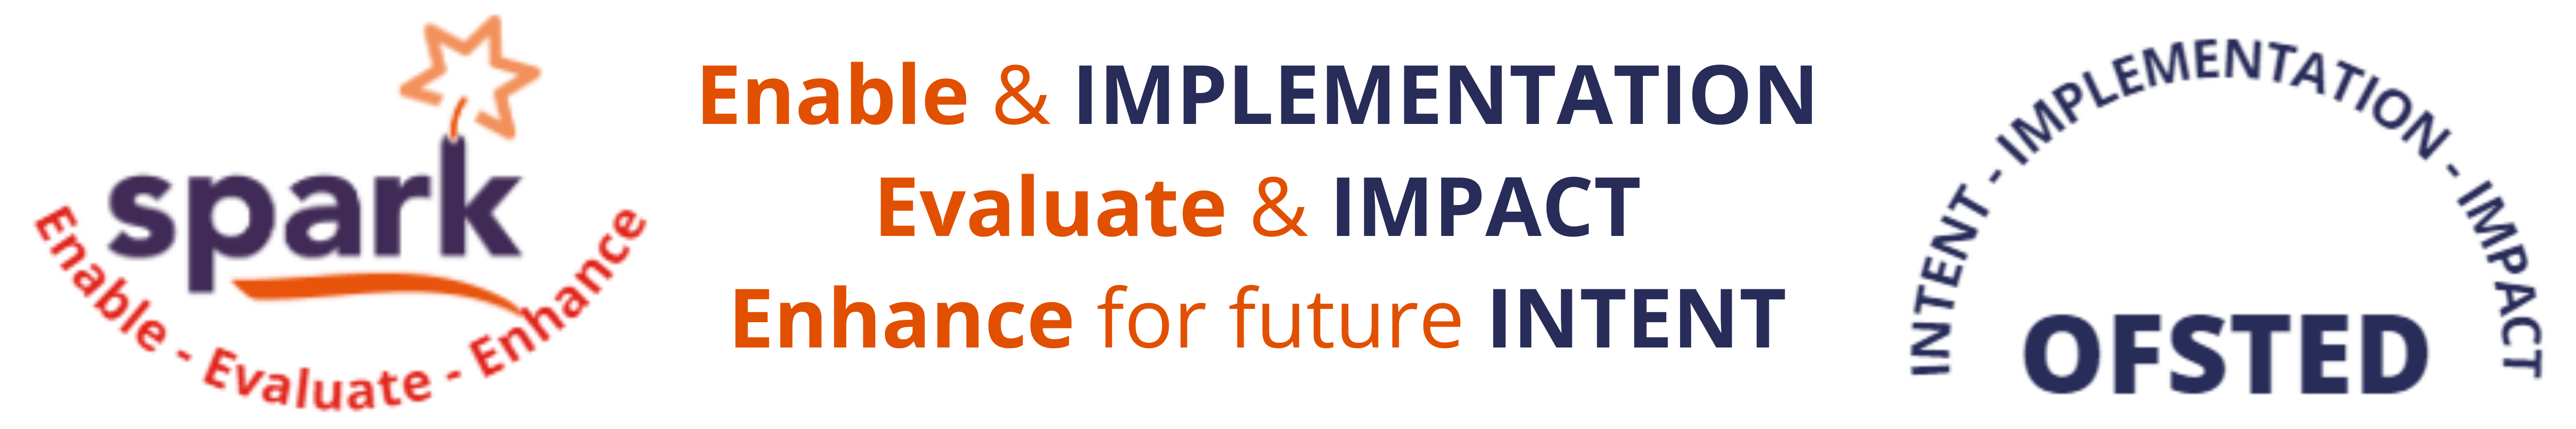 impact implementation intent ofsted eyfs banner title